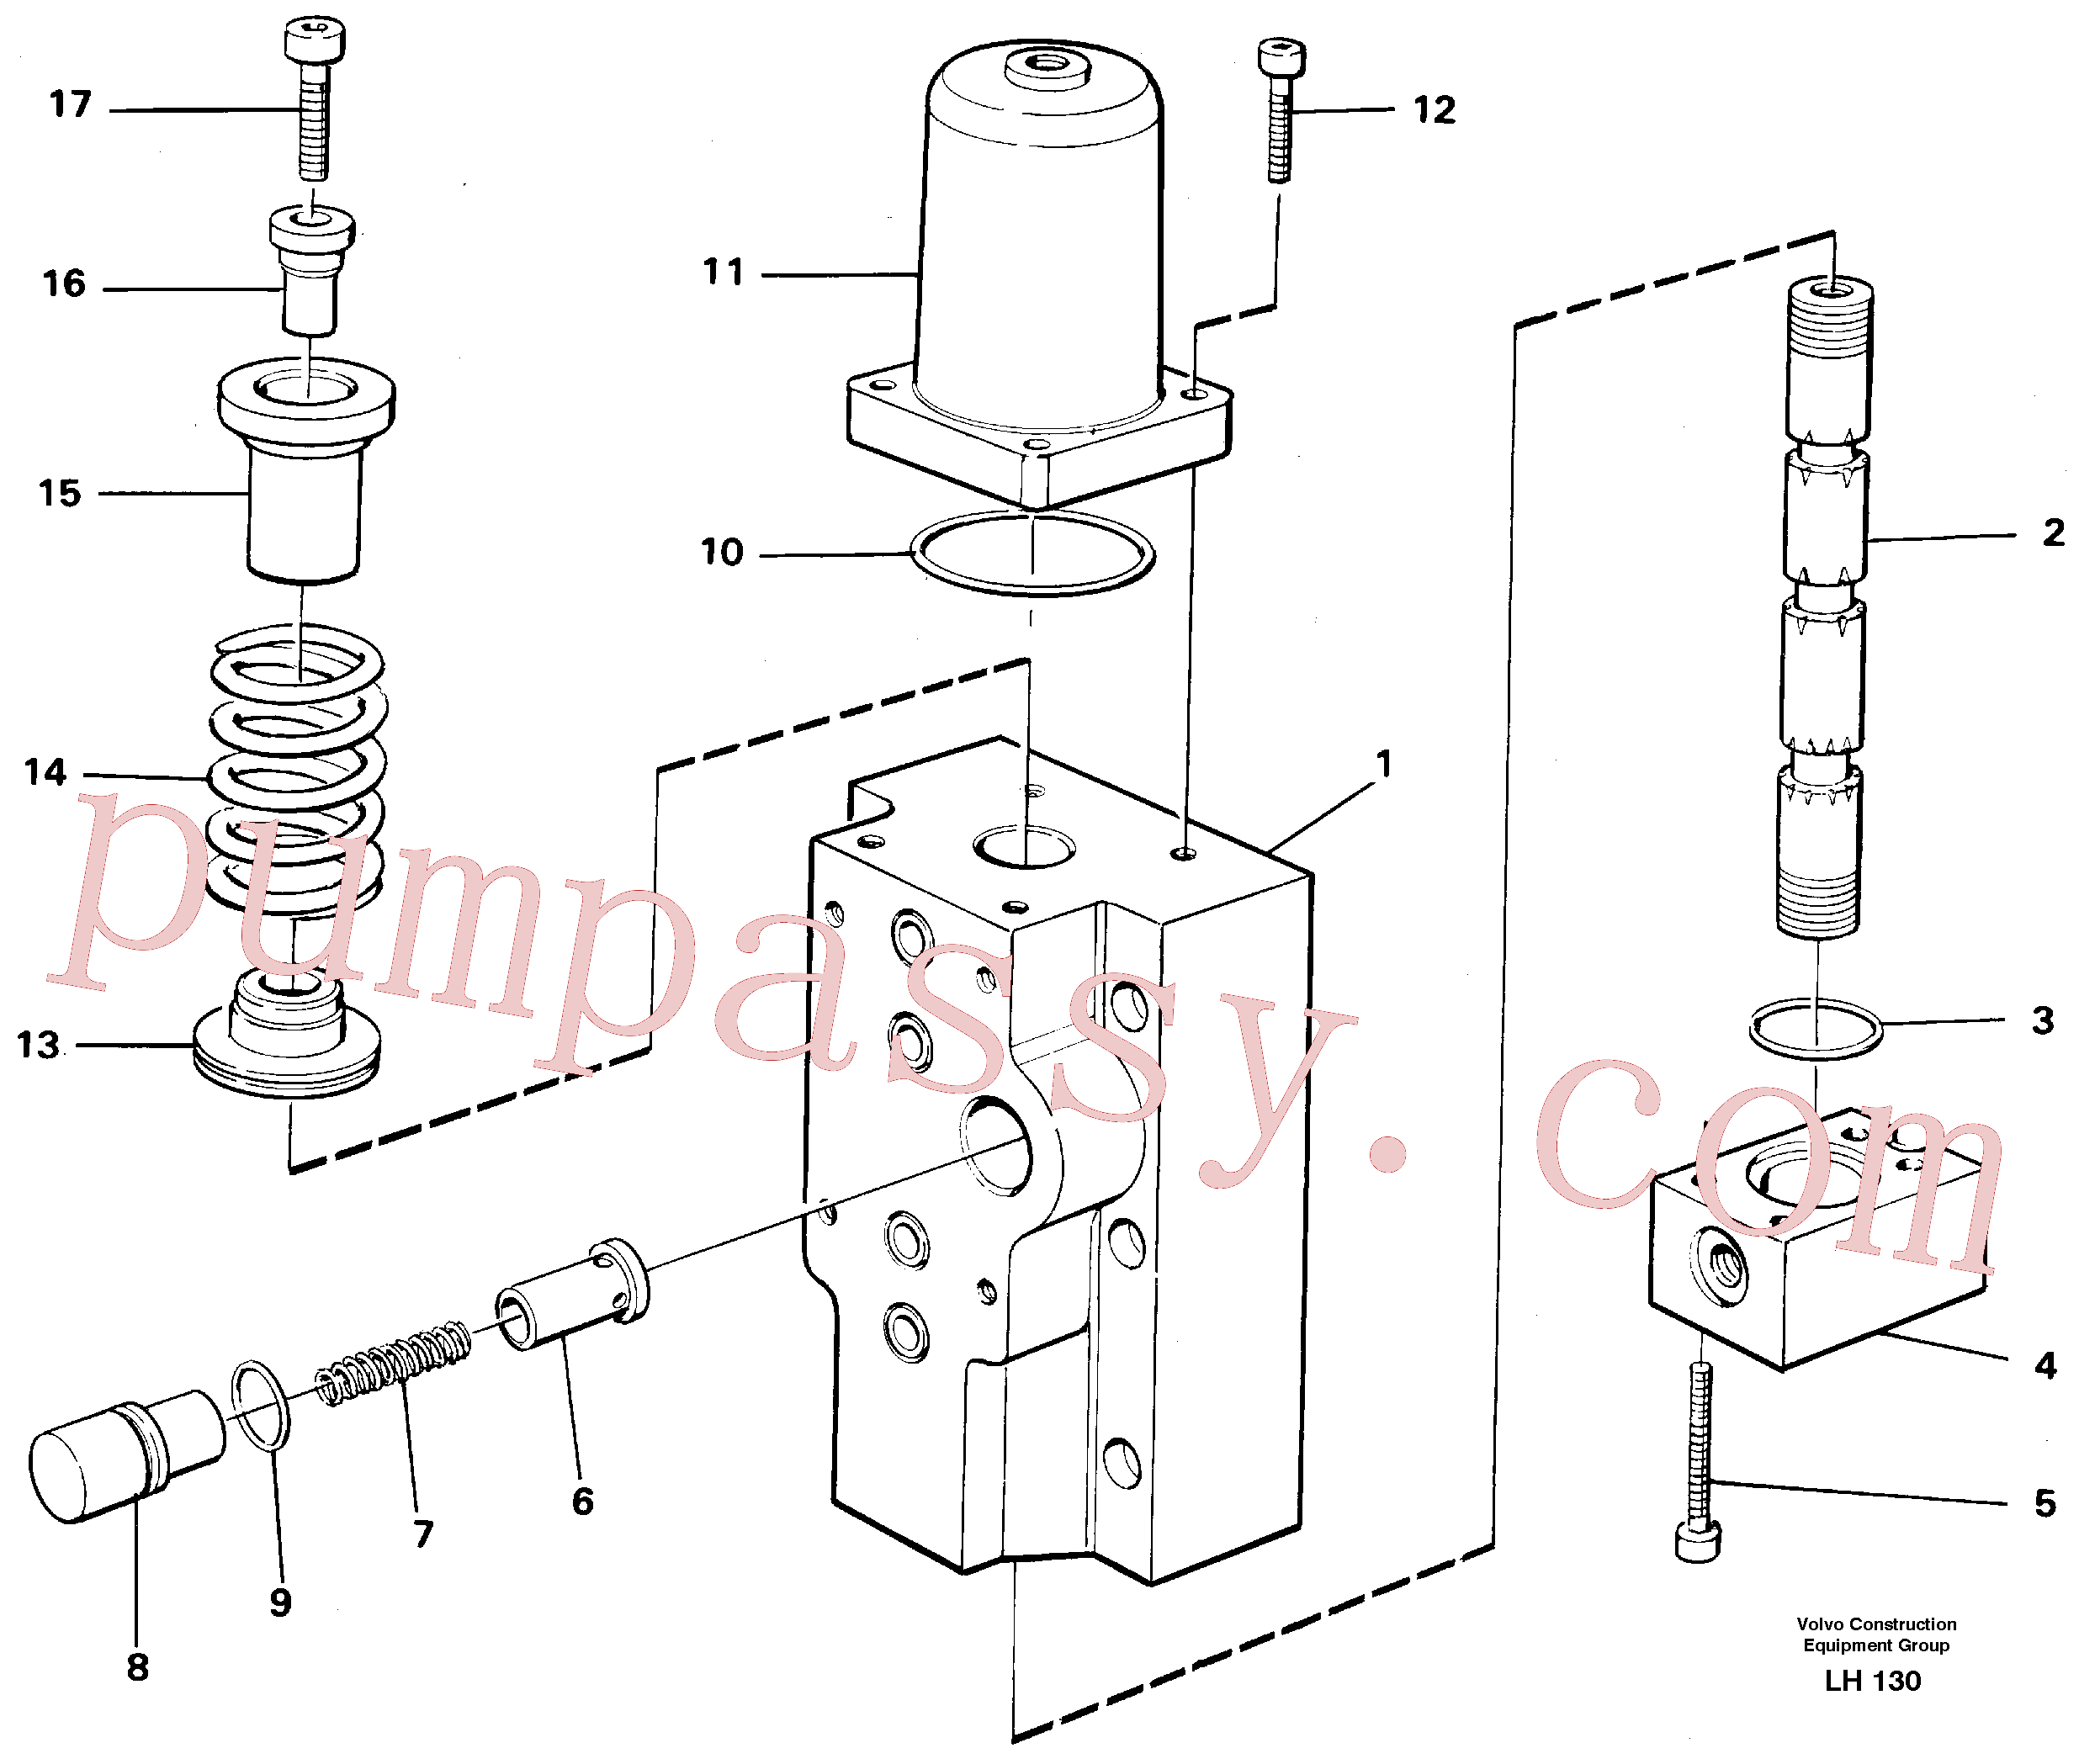 VOE14259278 for Volvo Four-way valve Primary(LH130 assembly)